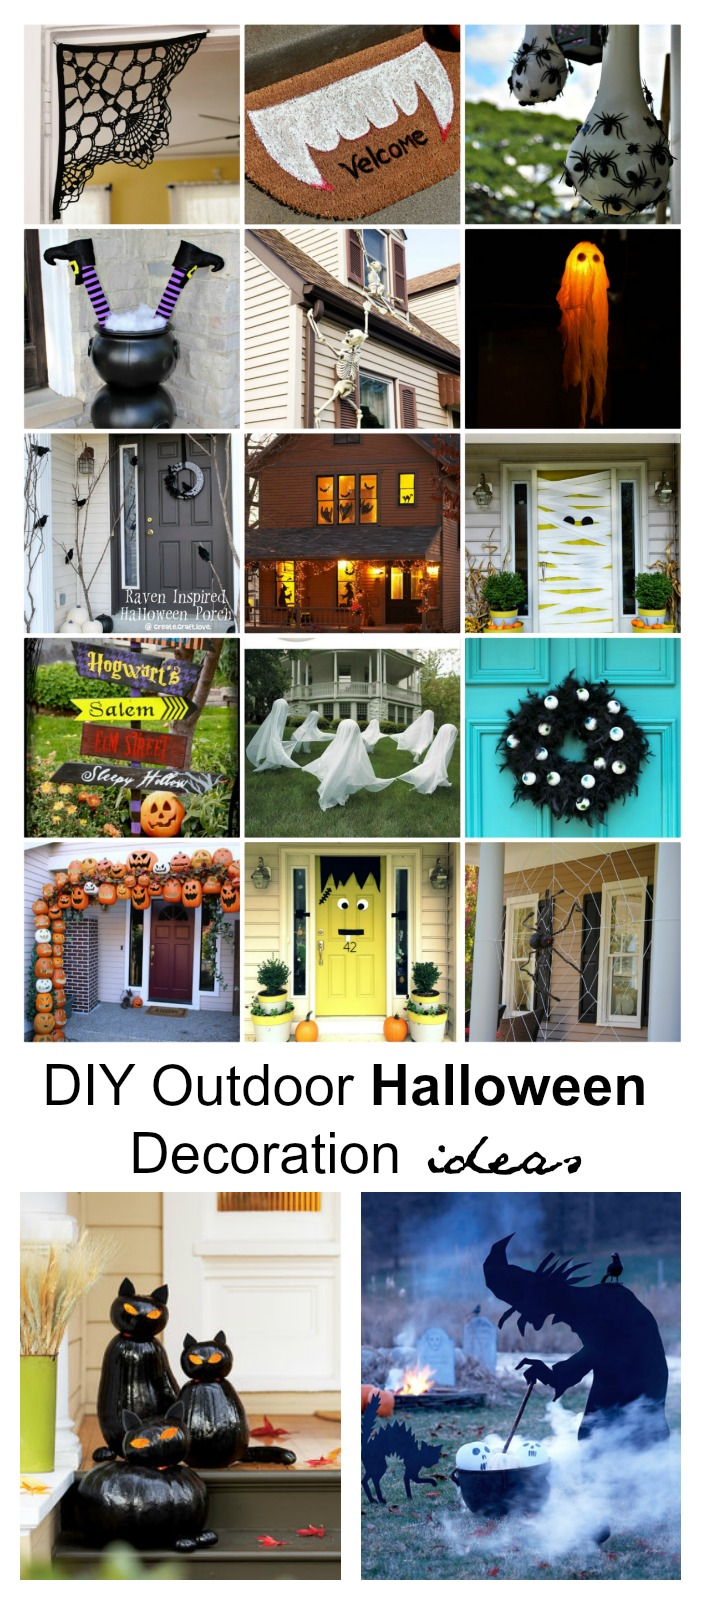 diy outdoor halloween decoration ideas - Wwwhalloween Decorations